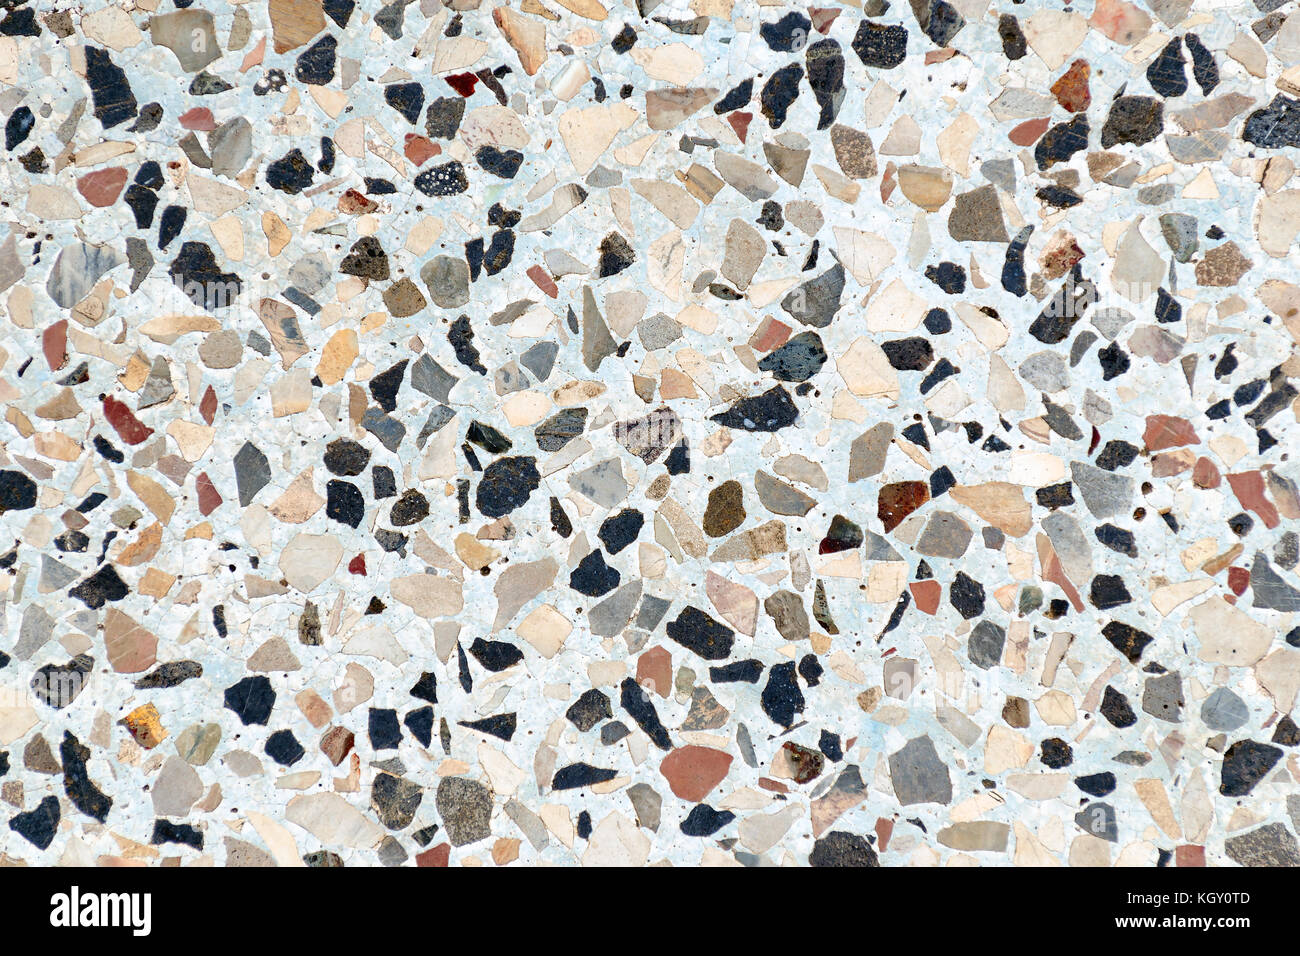 Multi-colored small flat stones are immersed in concrete. Abstract background. - Stock Image